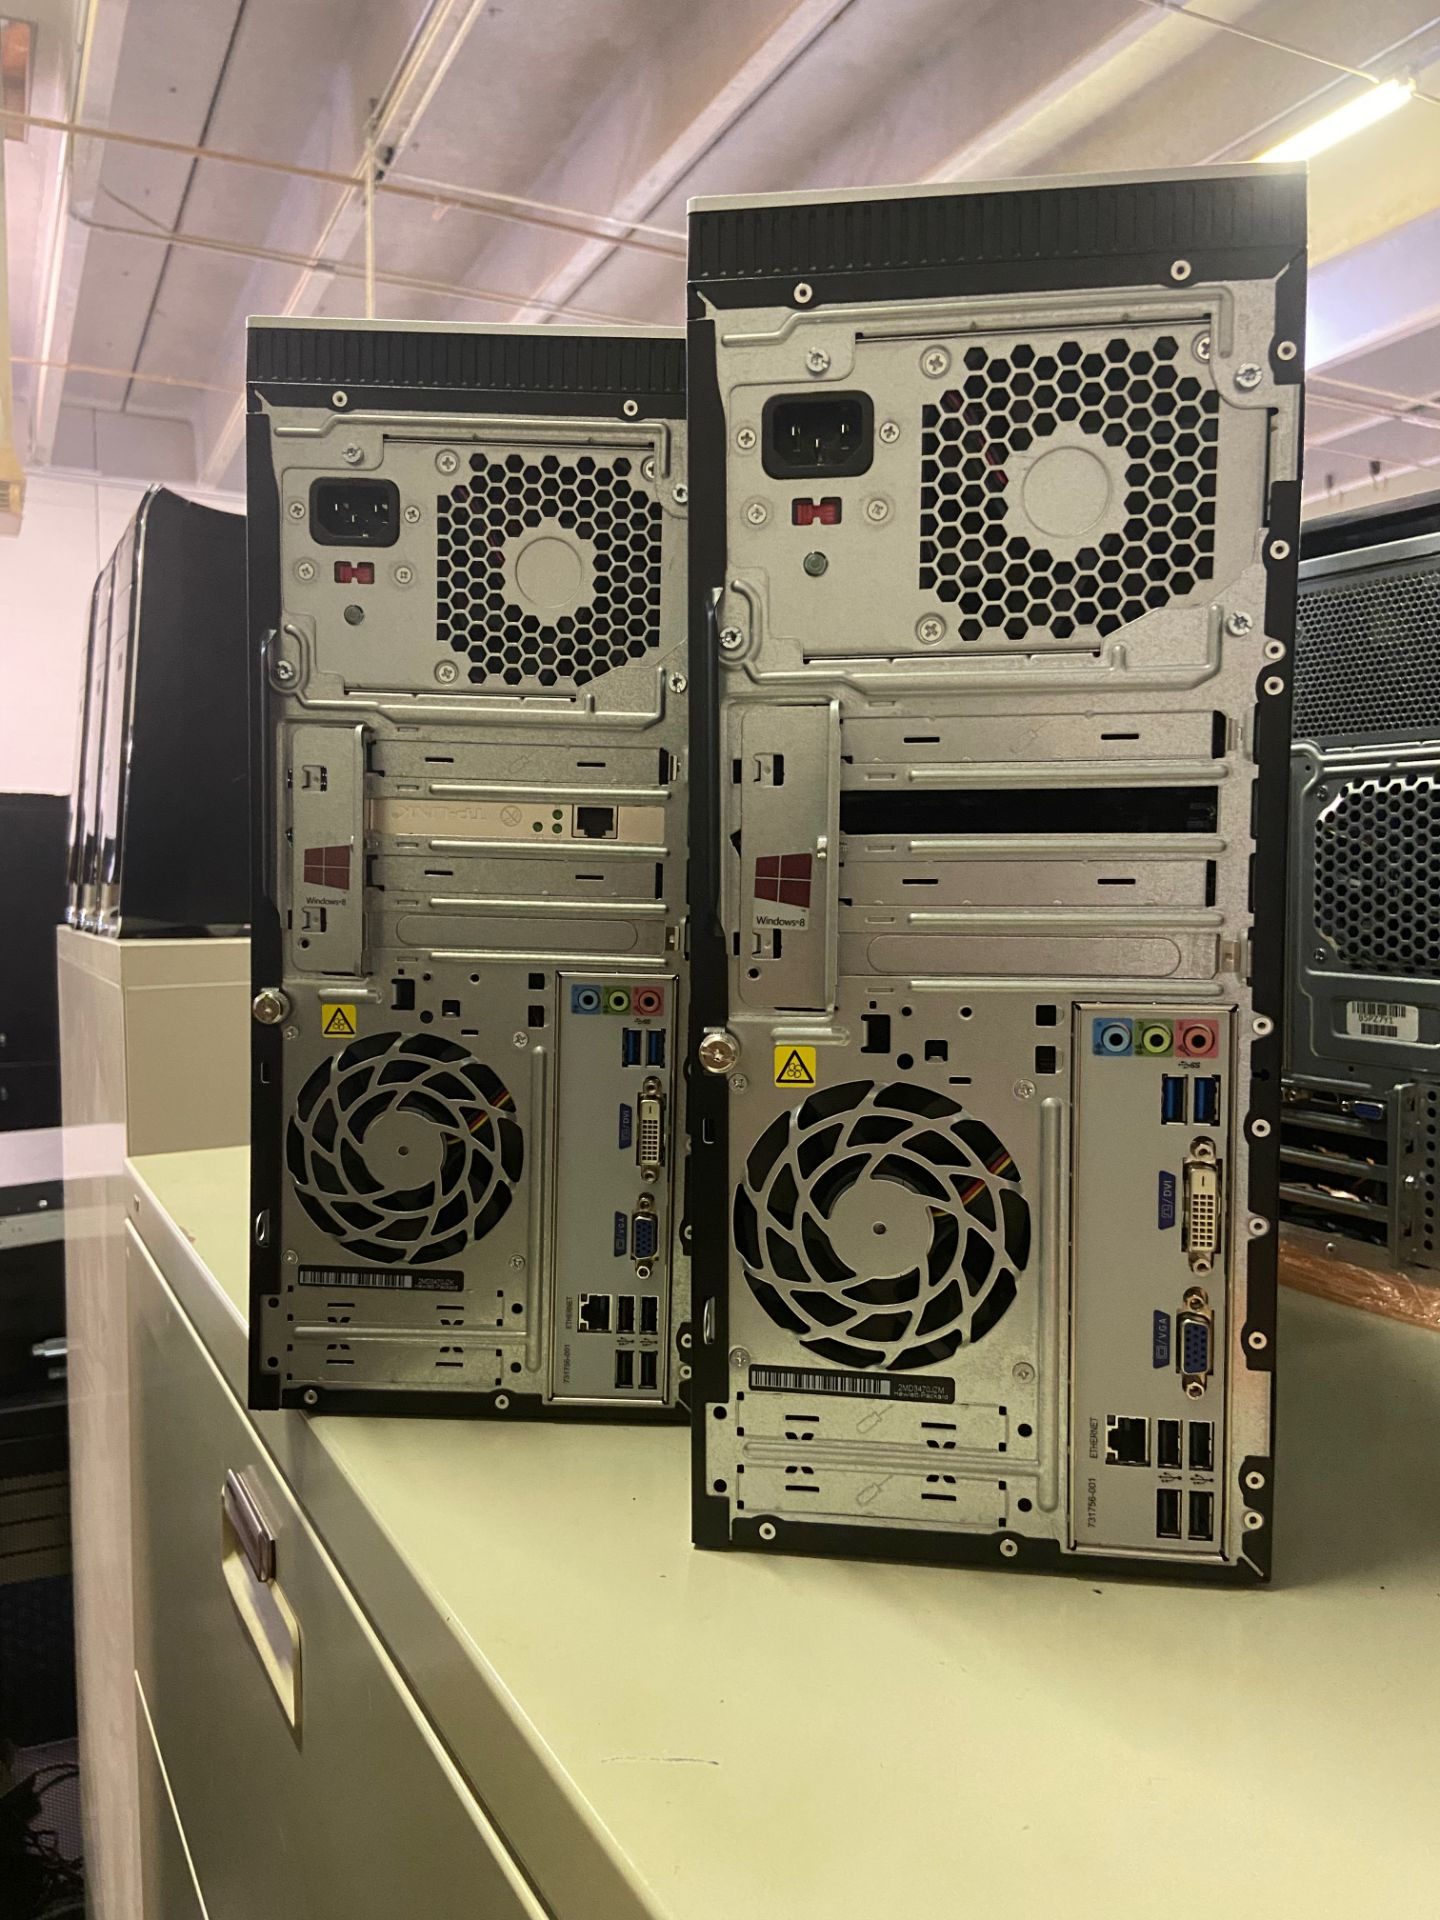 Dell Envy Desktop Computers, Qty 2, Intel i7 Processors, Loading/Removal Fee: $20 - Image 2 of 3